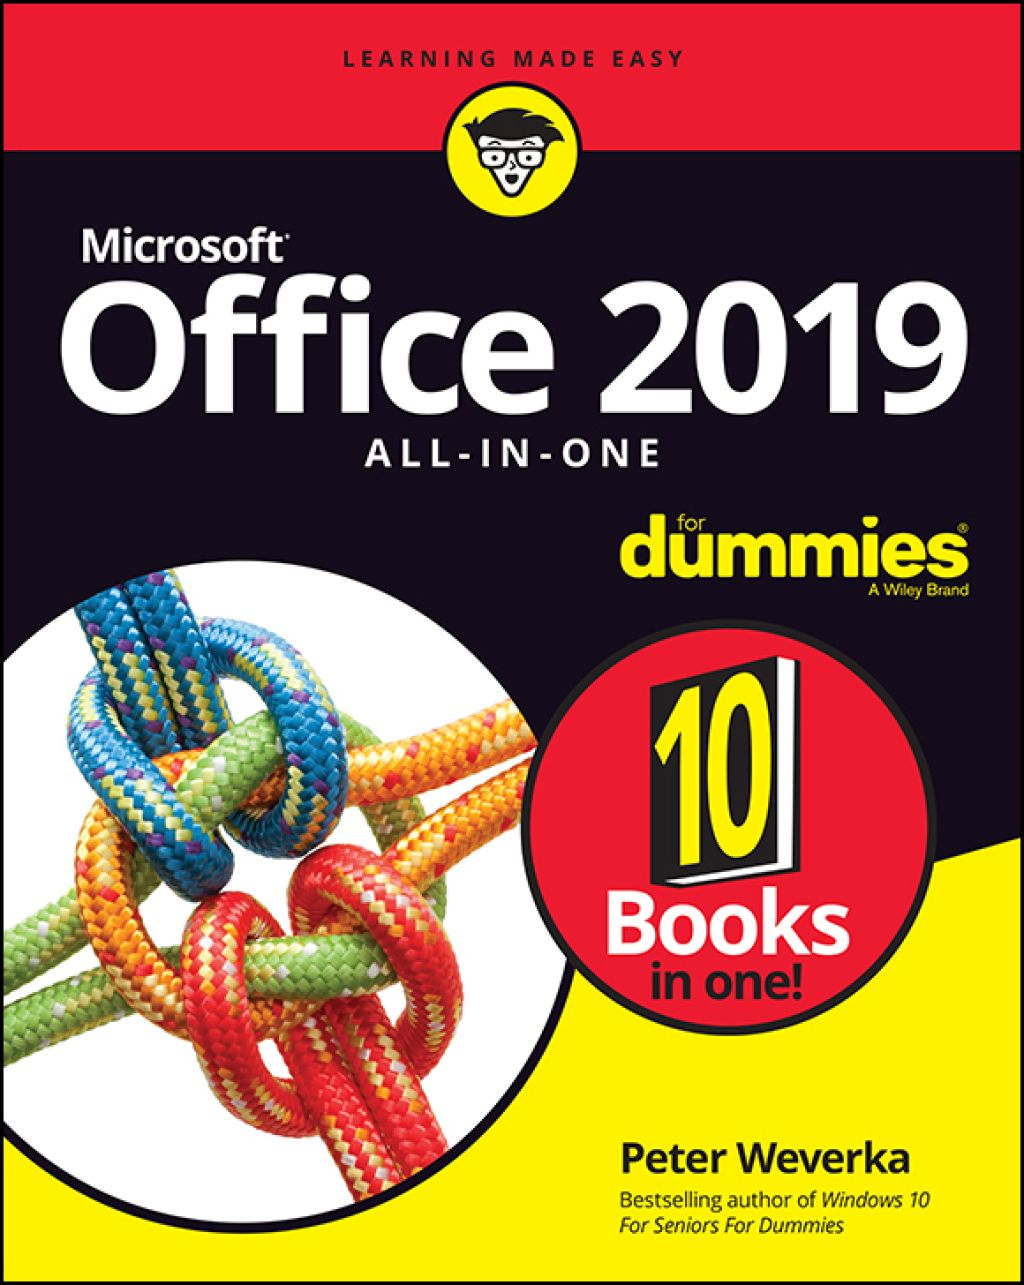 Office 2019 AllinOne For Dummies (eBook) (With images